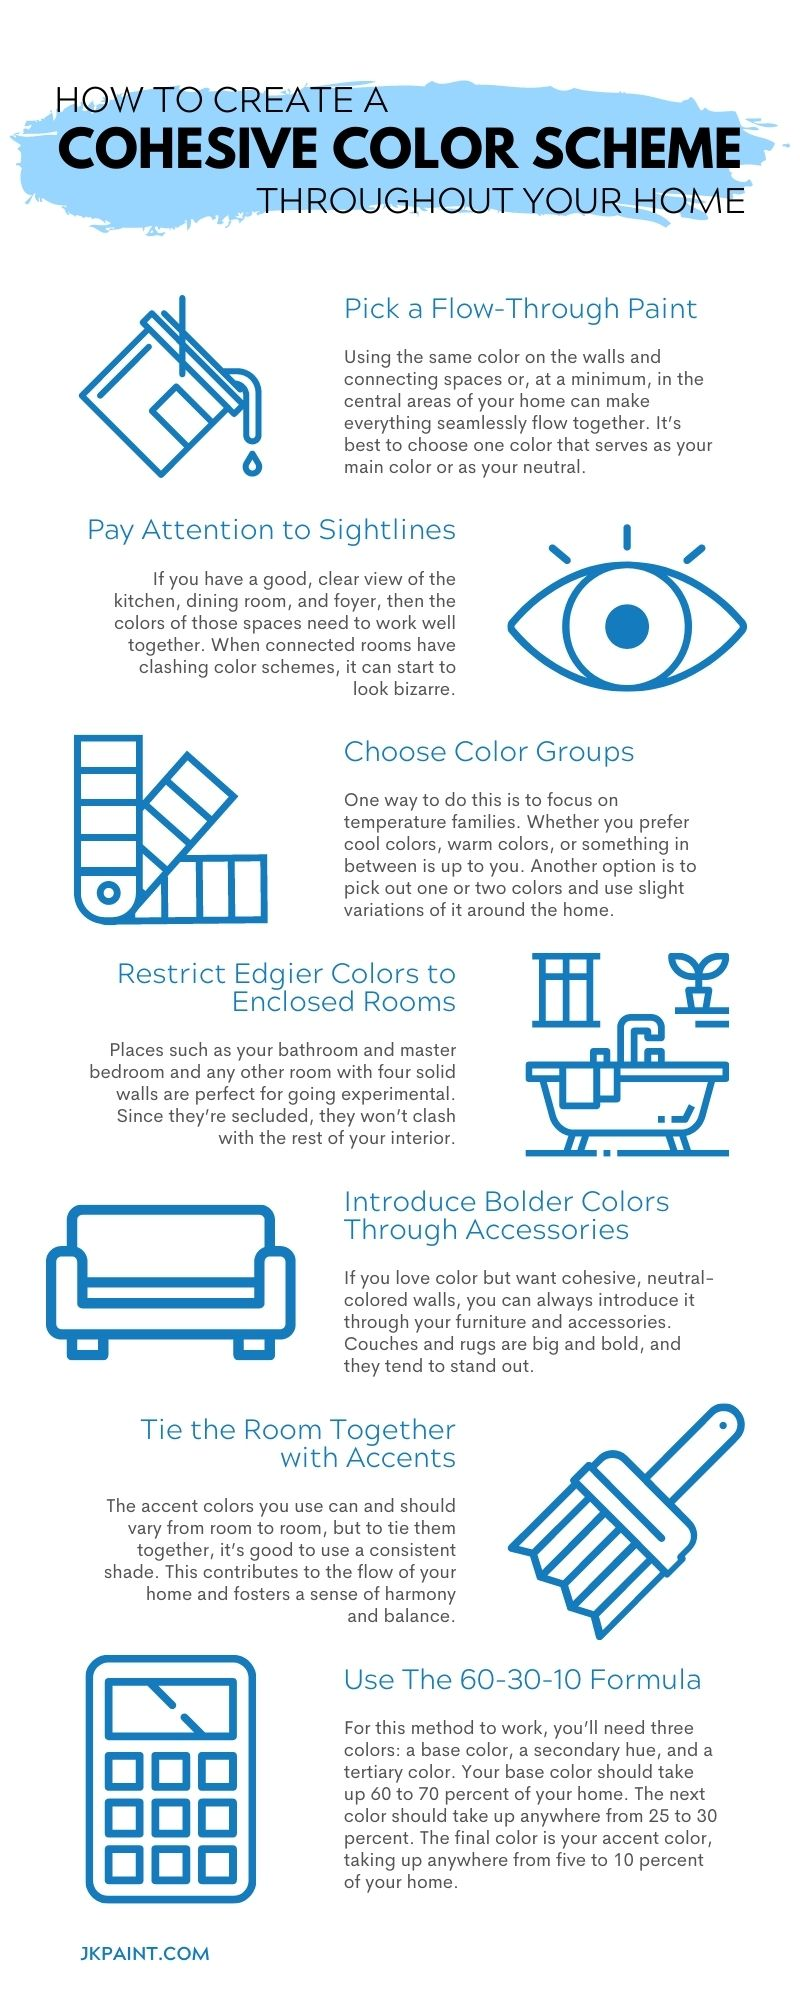 How To Create a Cohesive Color Scheme Throughout Your Home